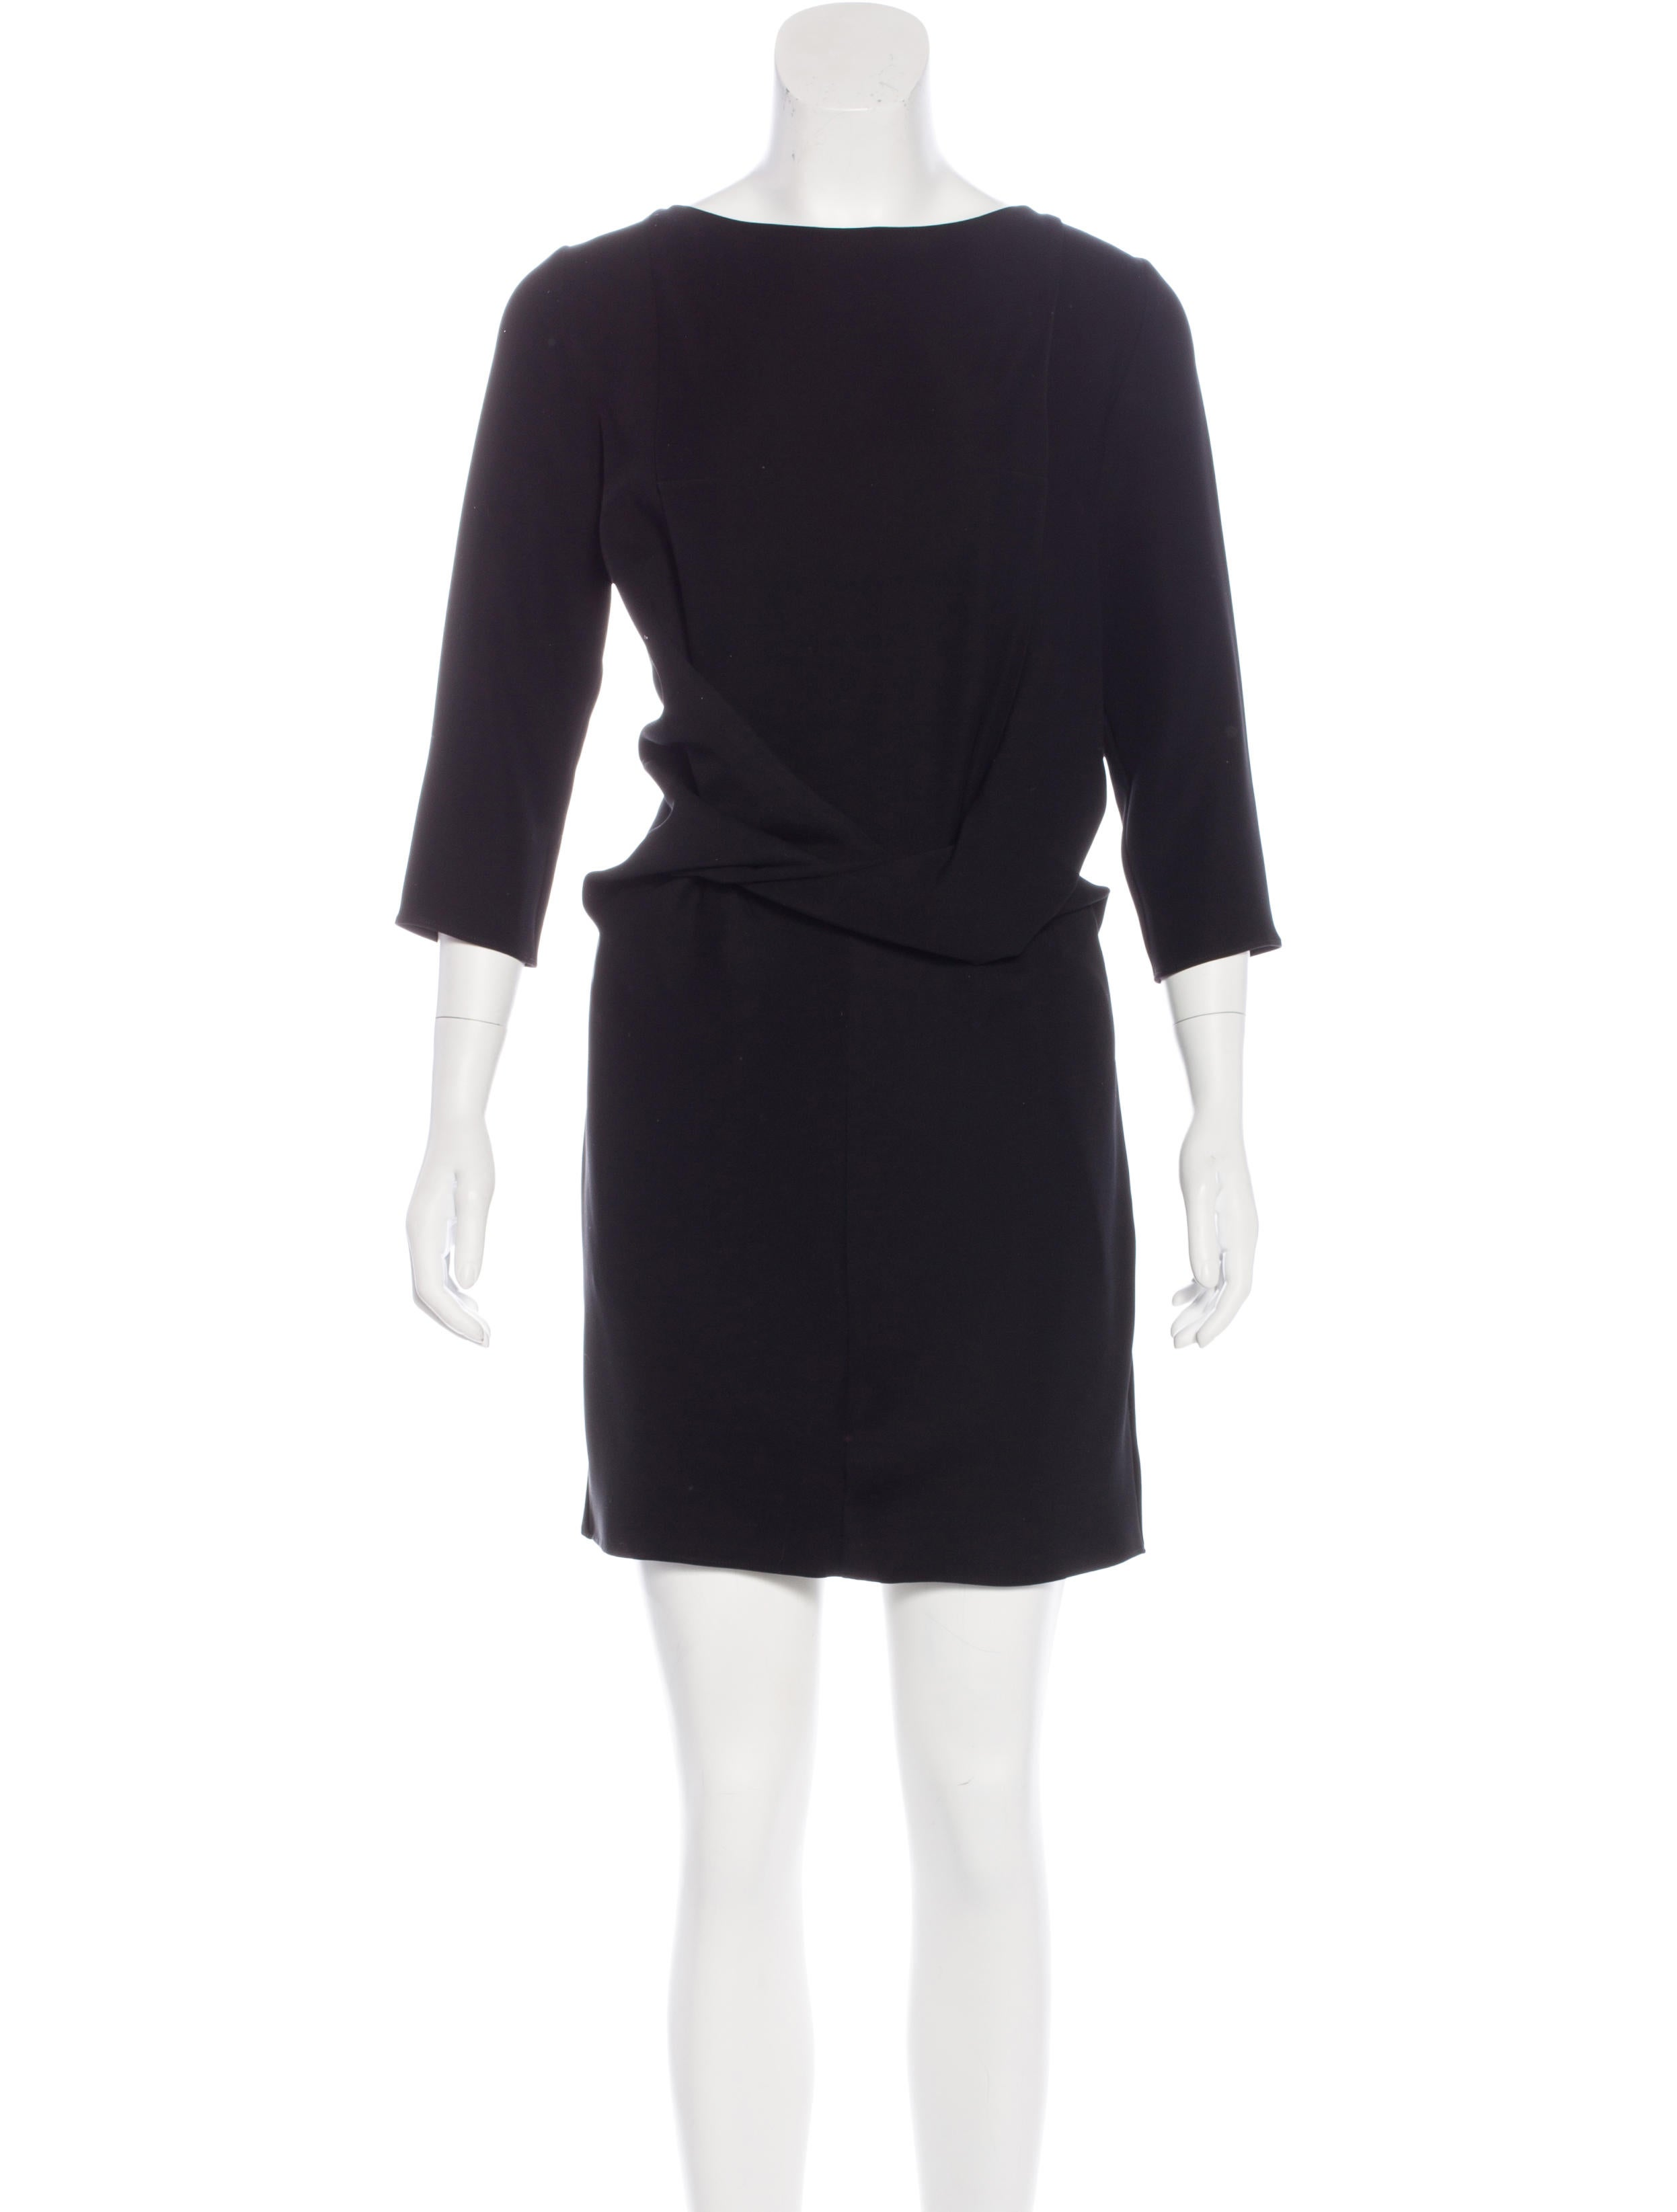 Carven Three Quarter Sleeve Mini Dress Clothing  : CAV257371enlarged from www.therealreal.com size 2494 x 3290 jpeg 156kB